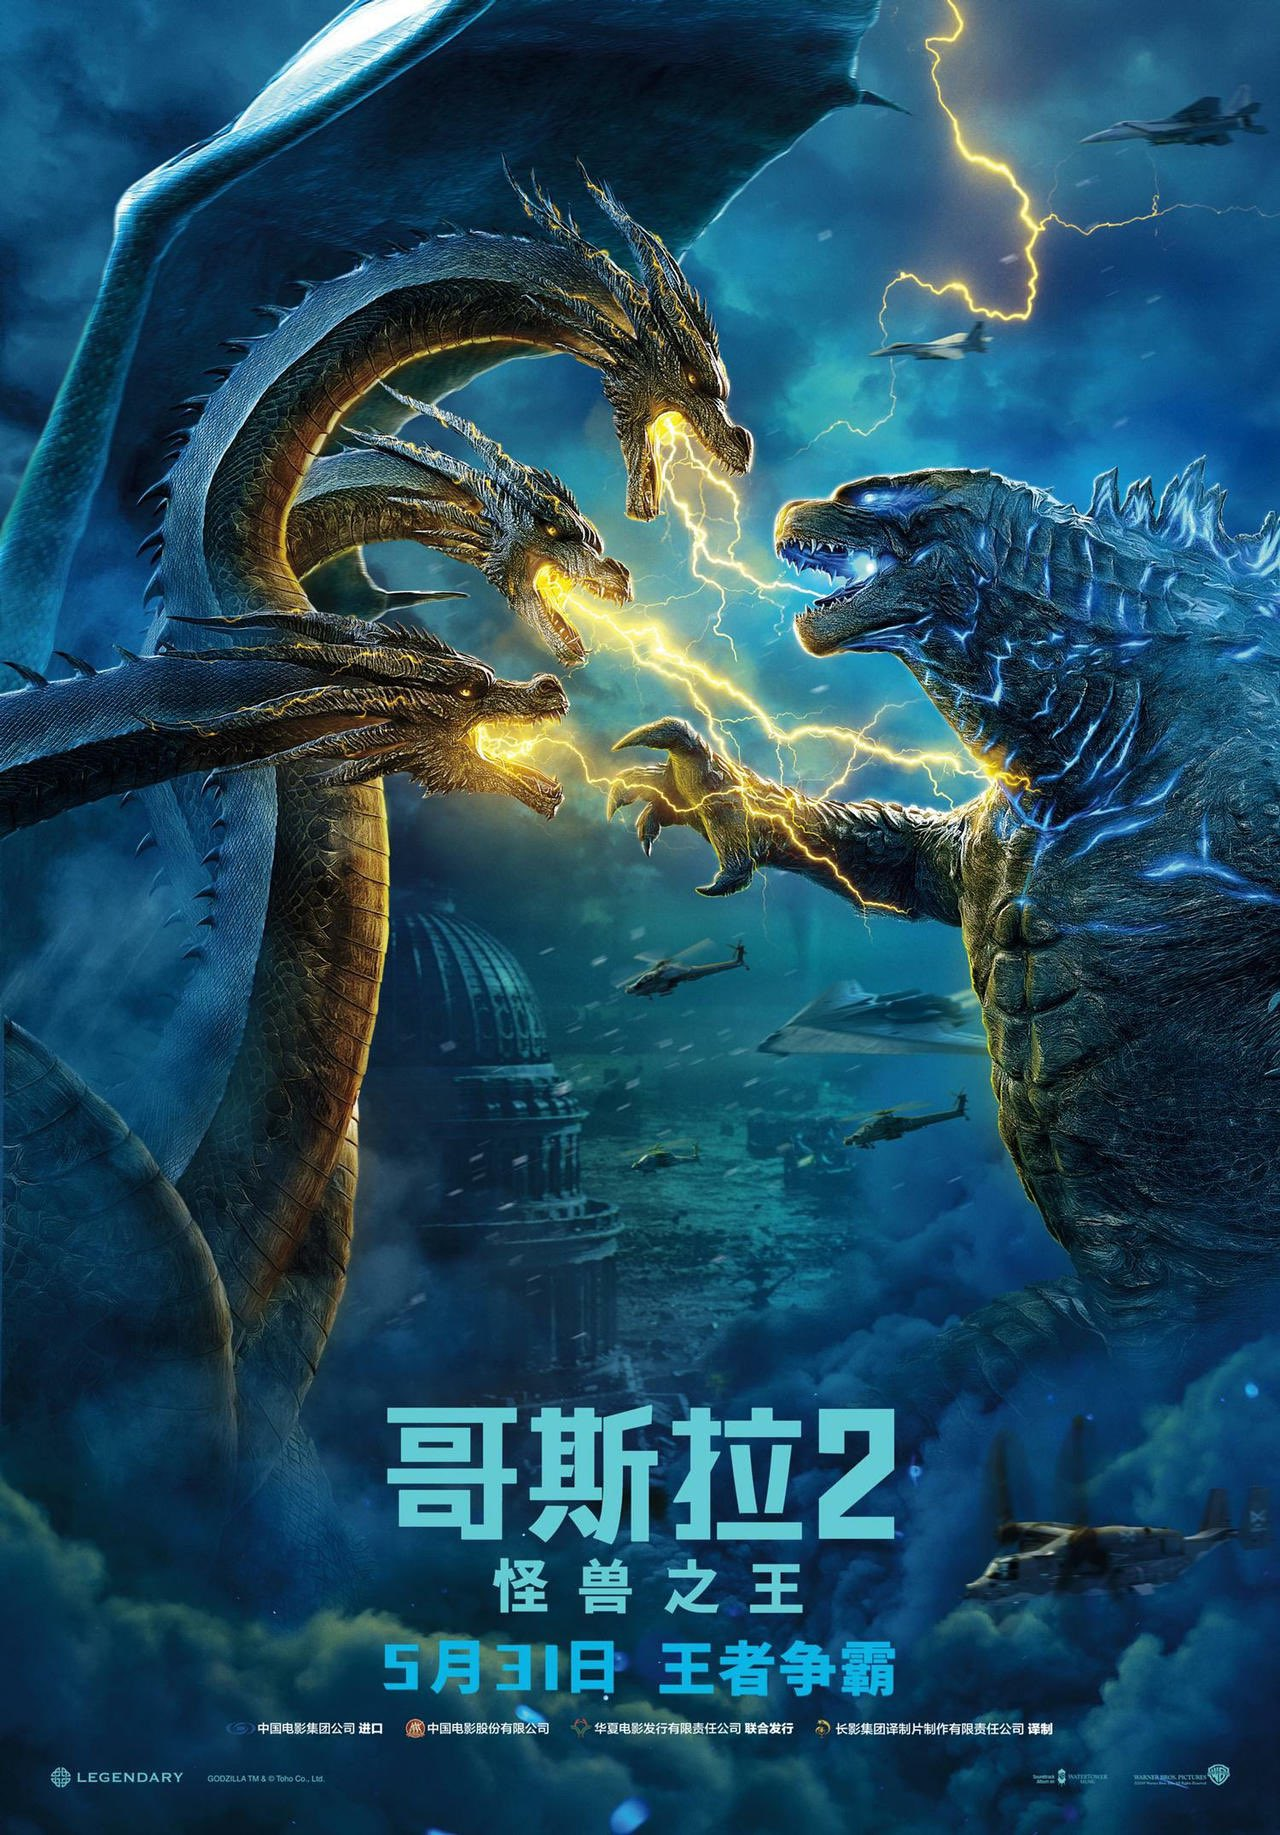 Awesome poster for Godzilla: King of the Monsters, on Paul Gale Network